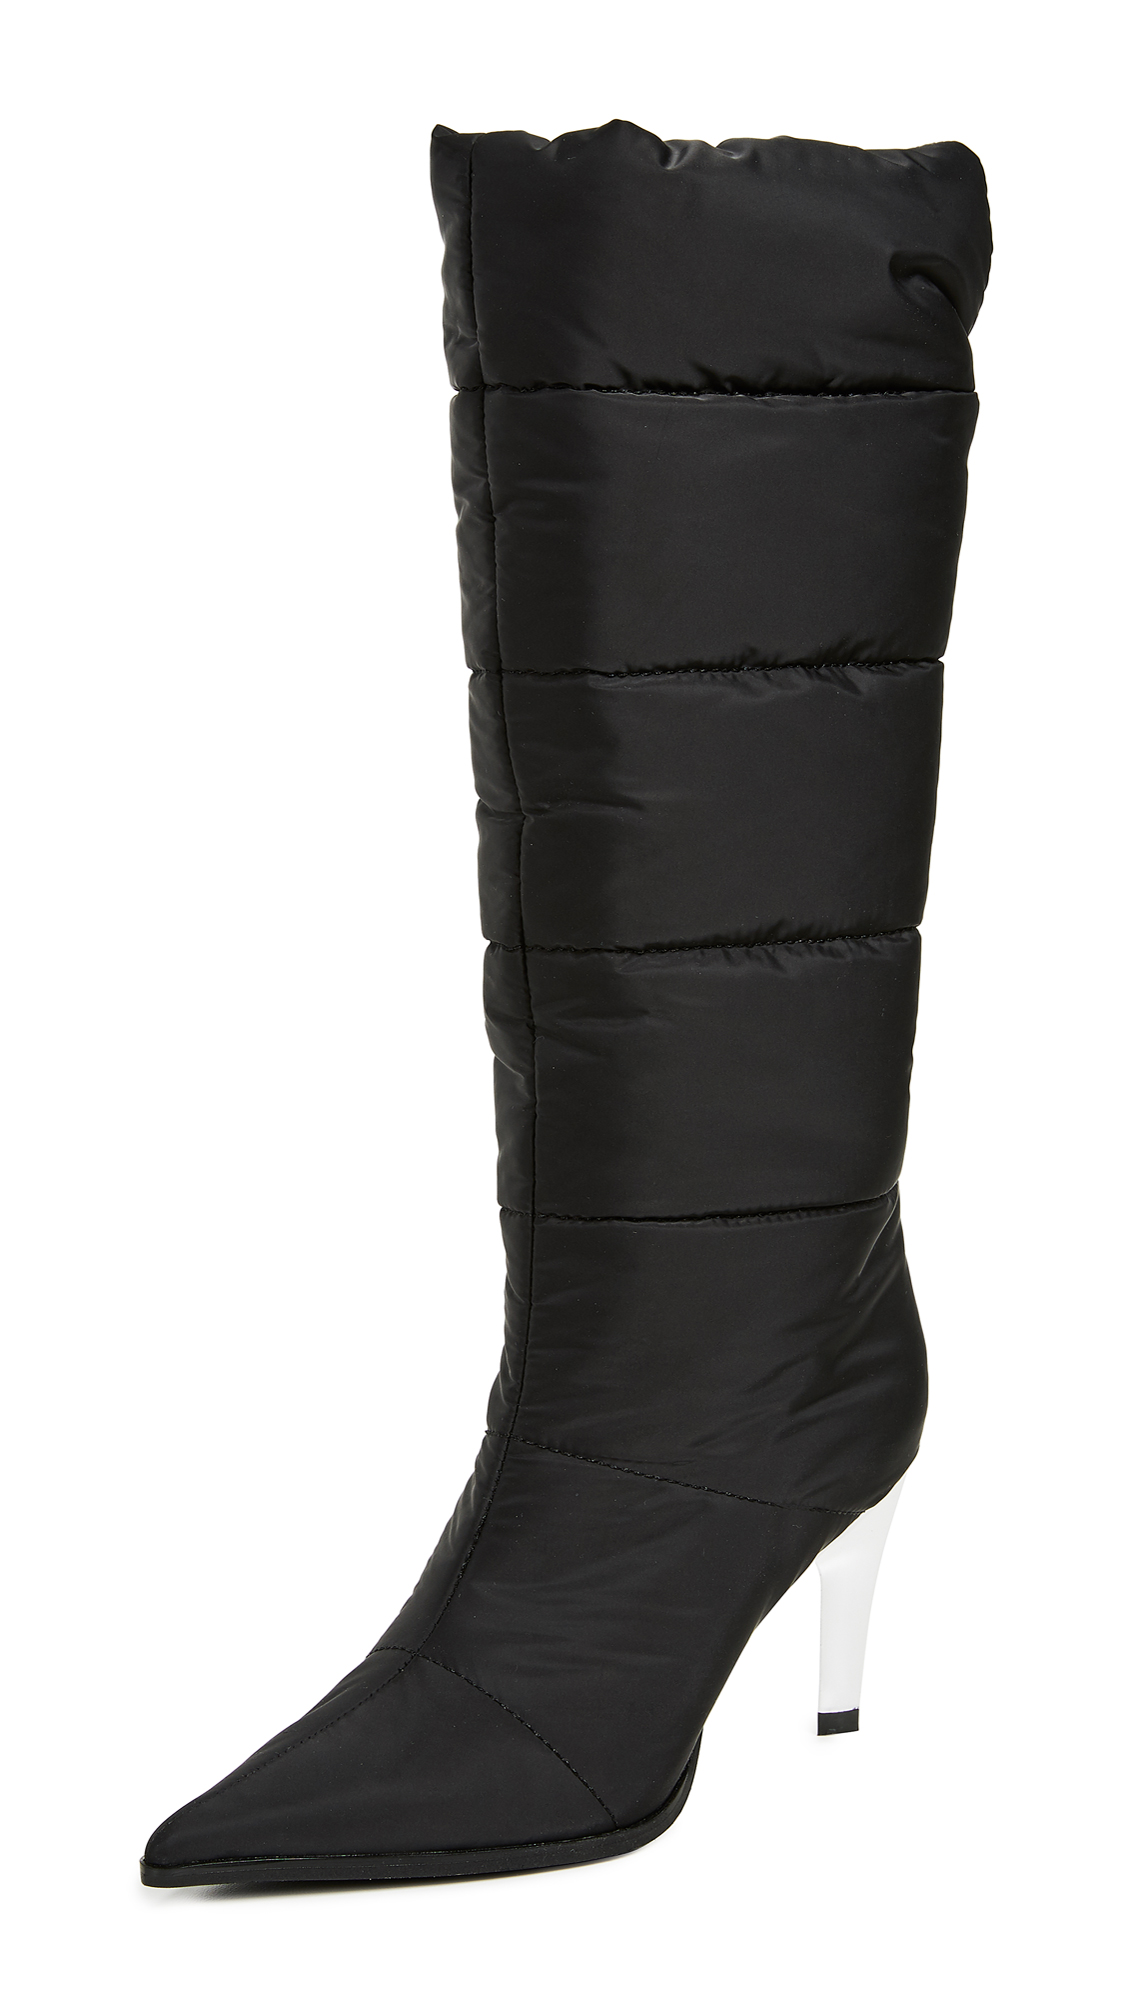 Photo of Jeffrey Campbell Apris Puffer Boots online shoes sales